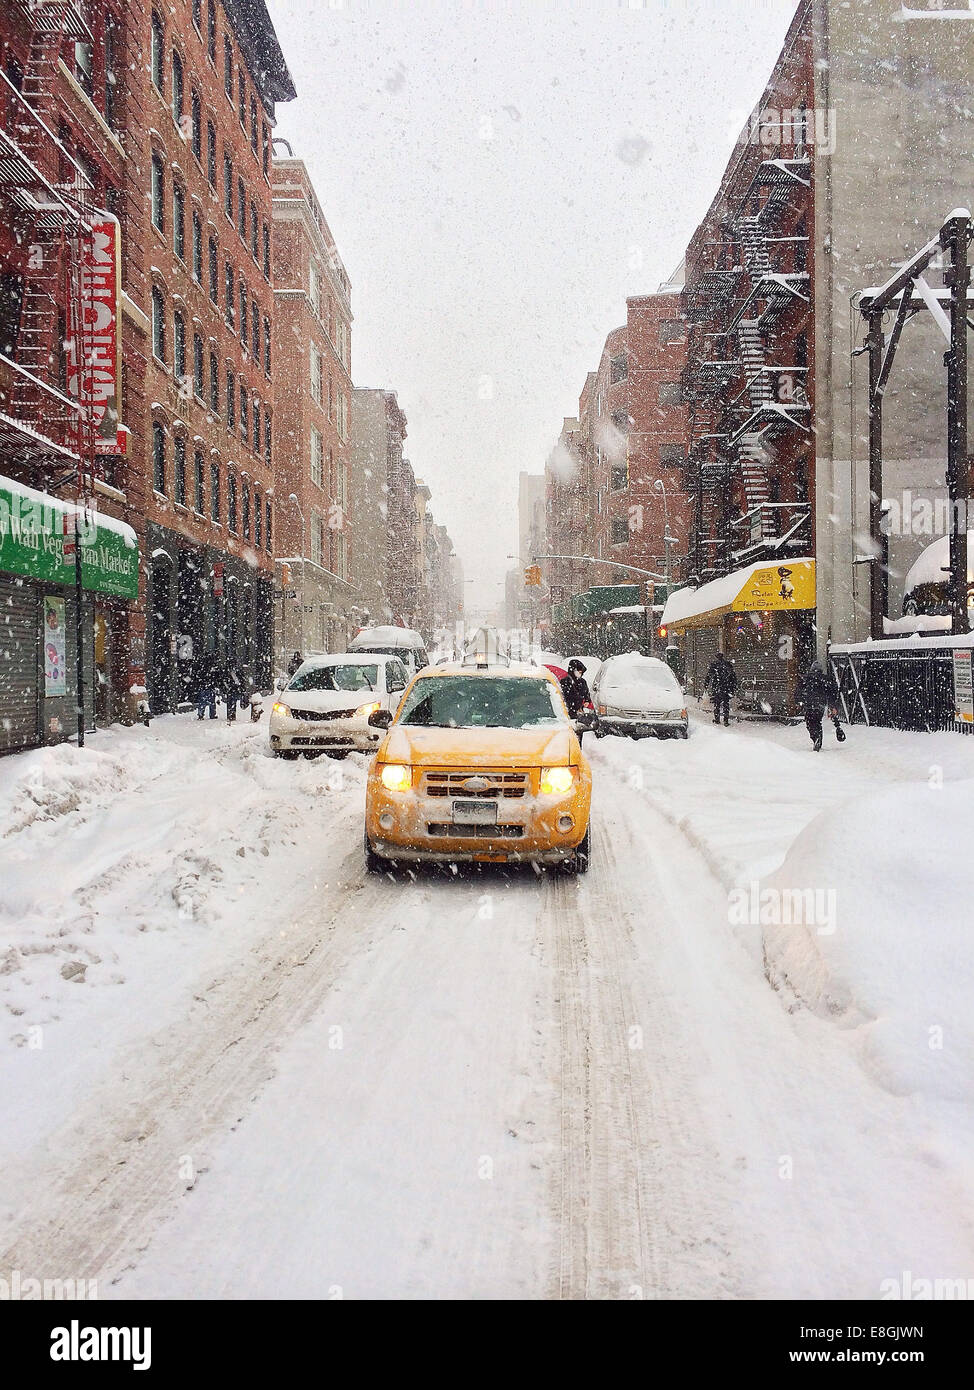 USA, New York City, Lower East Side, Chinatown, Yellow cab in snowstorm - Stock Image